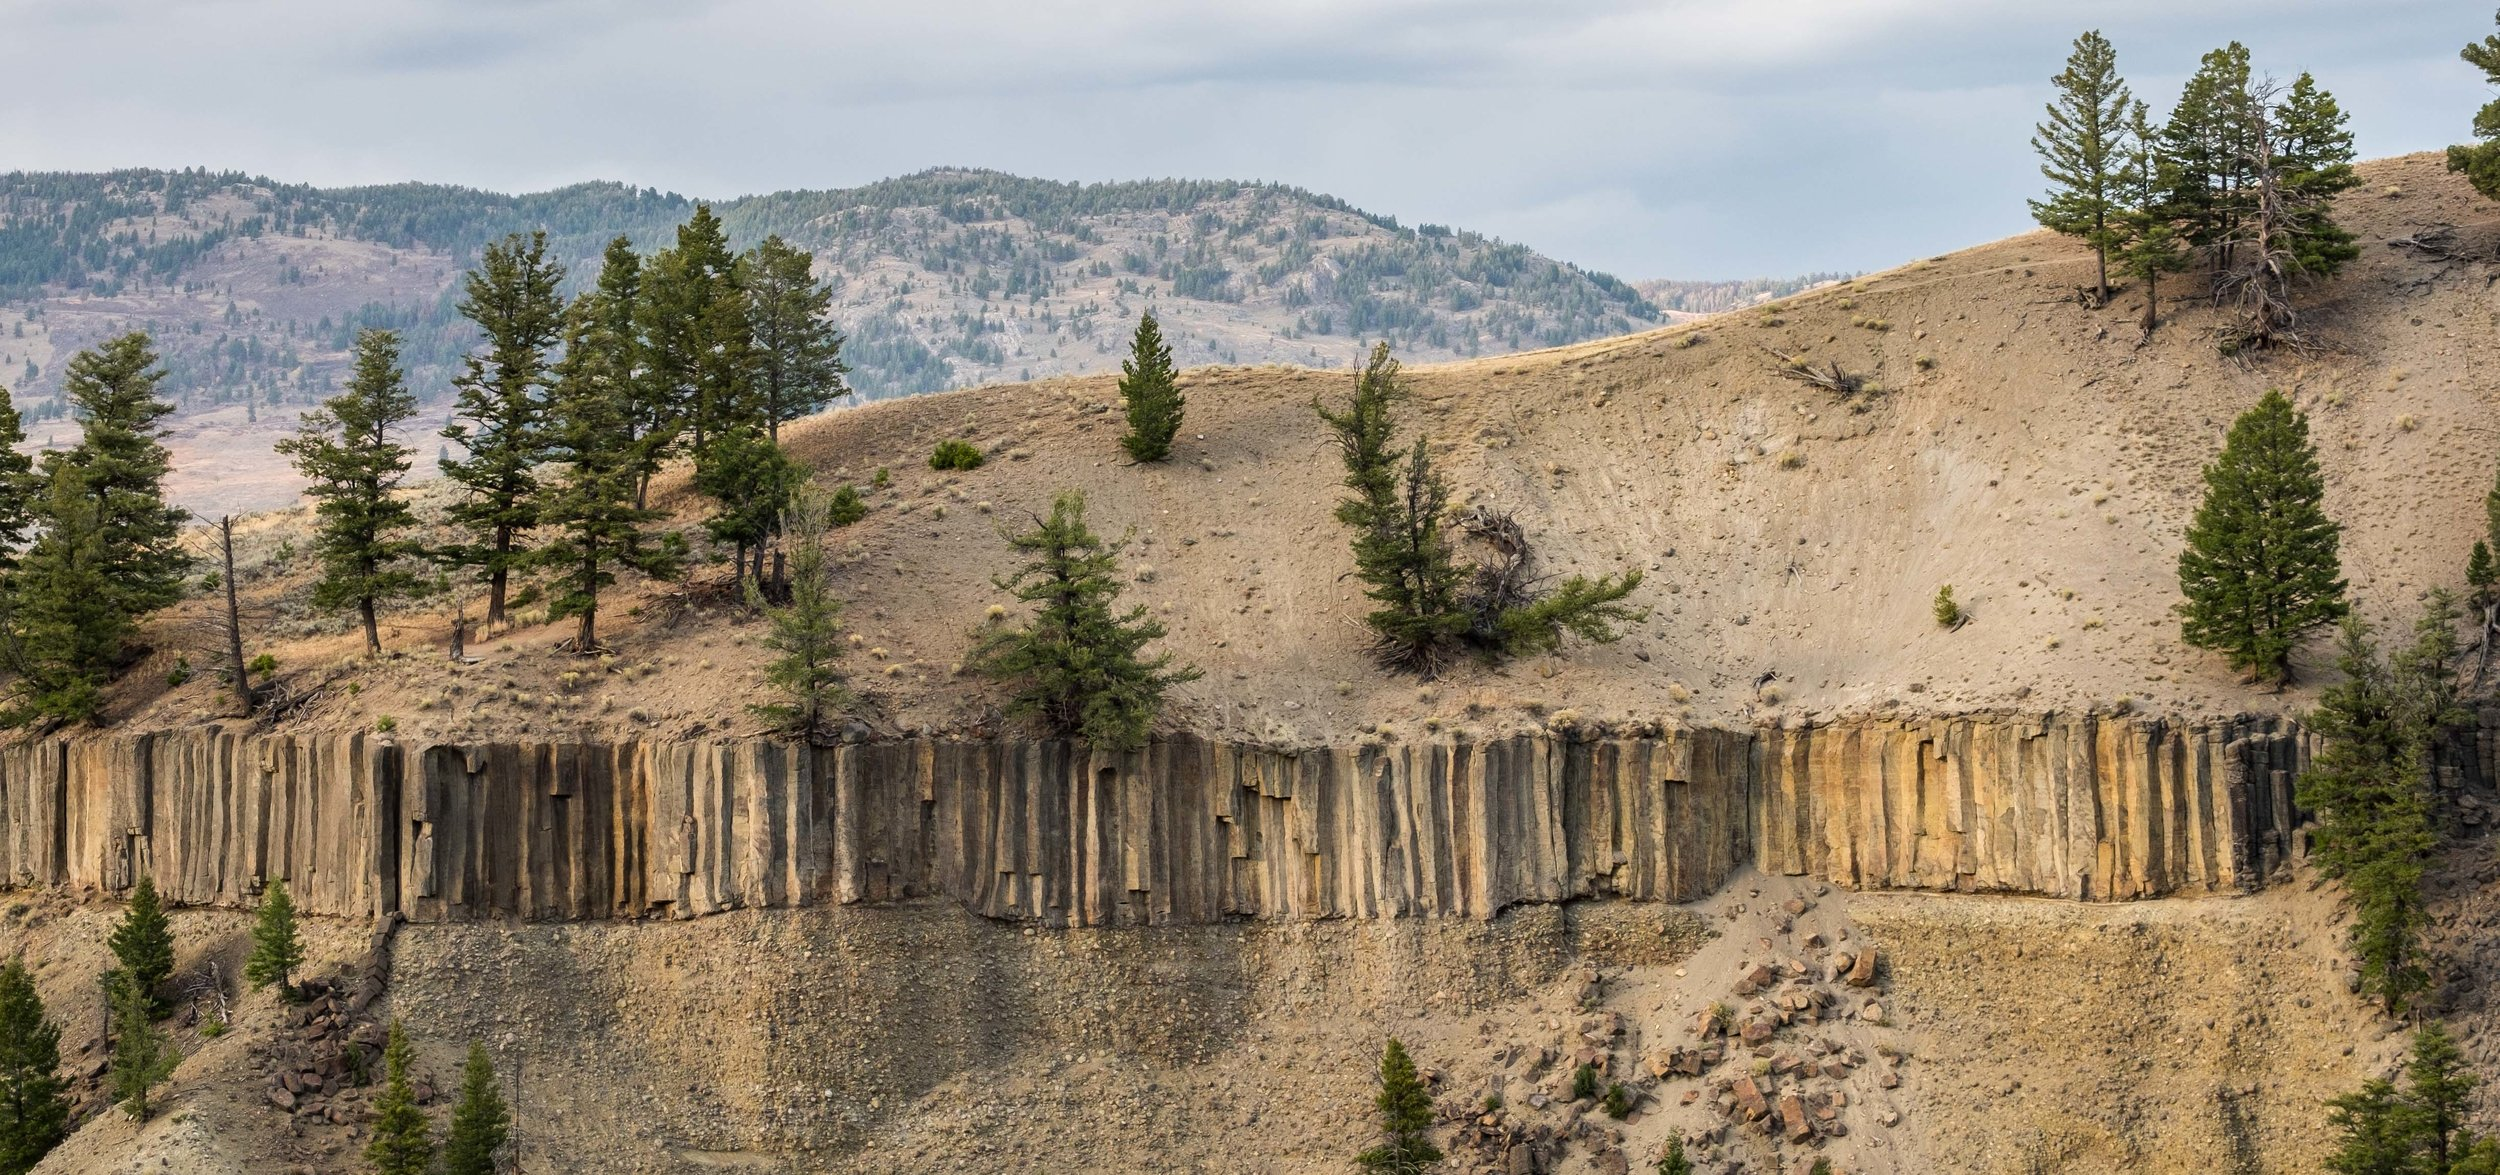 Yellowstone National Park - 023.jpg